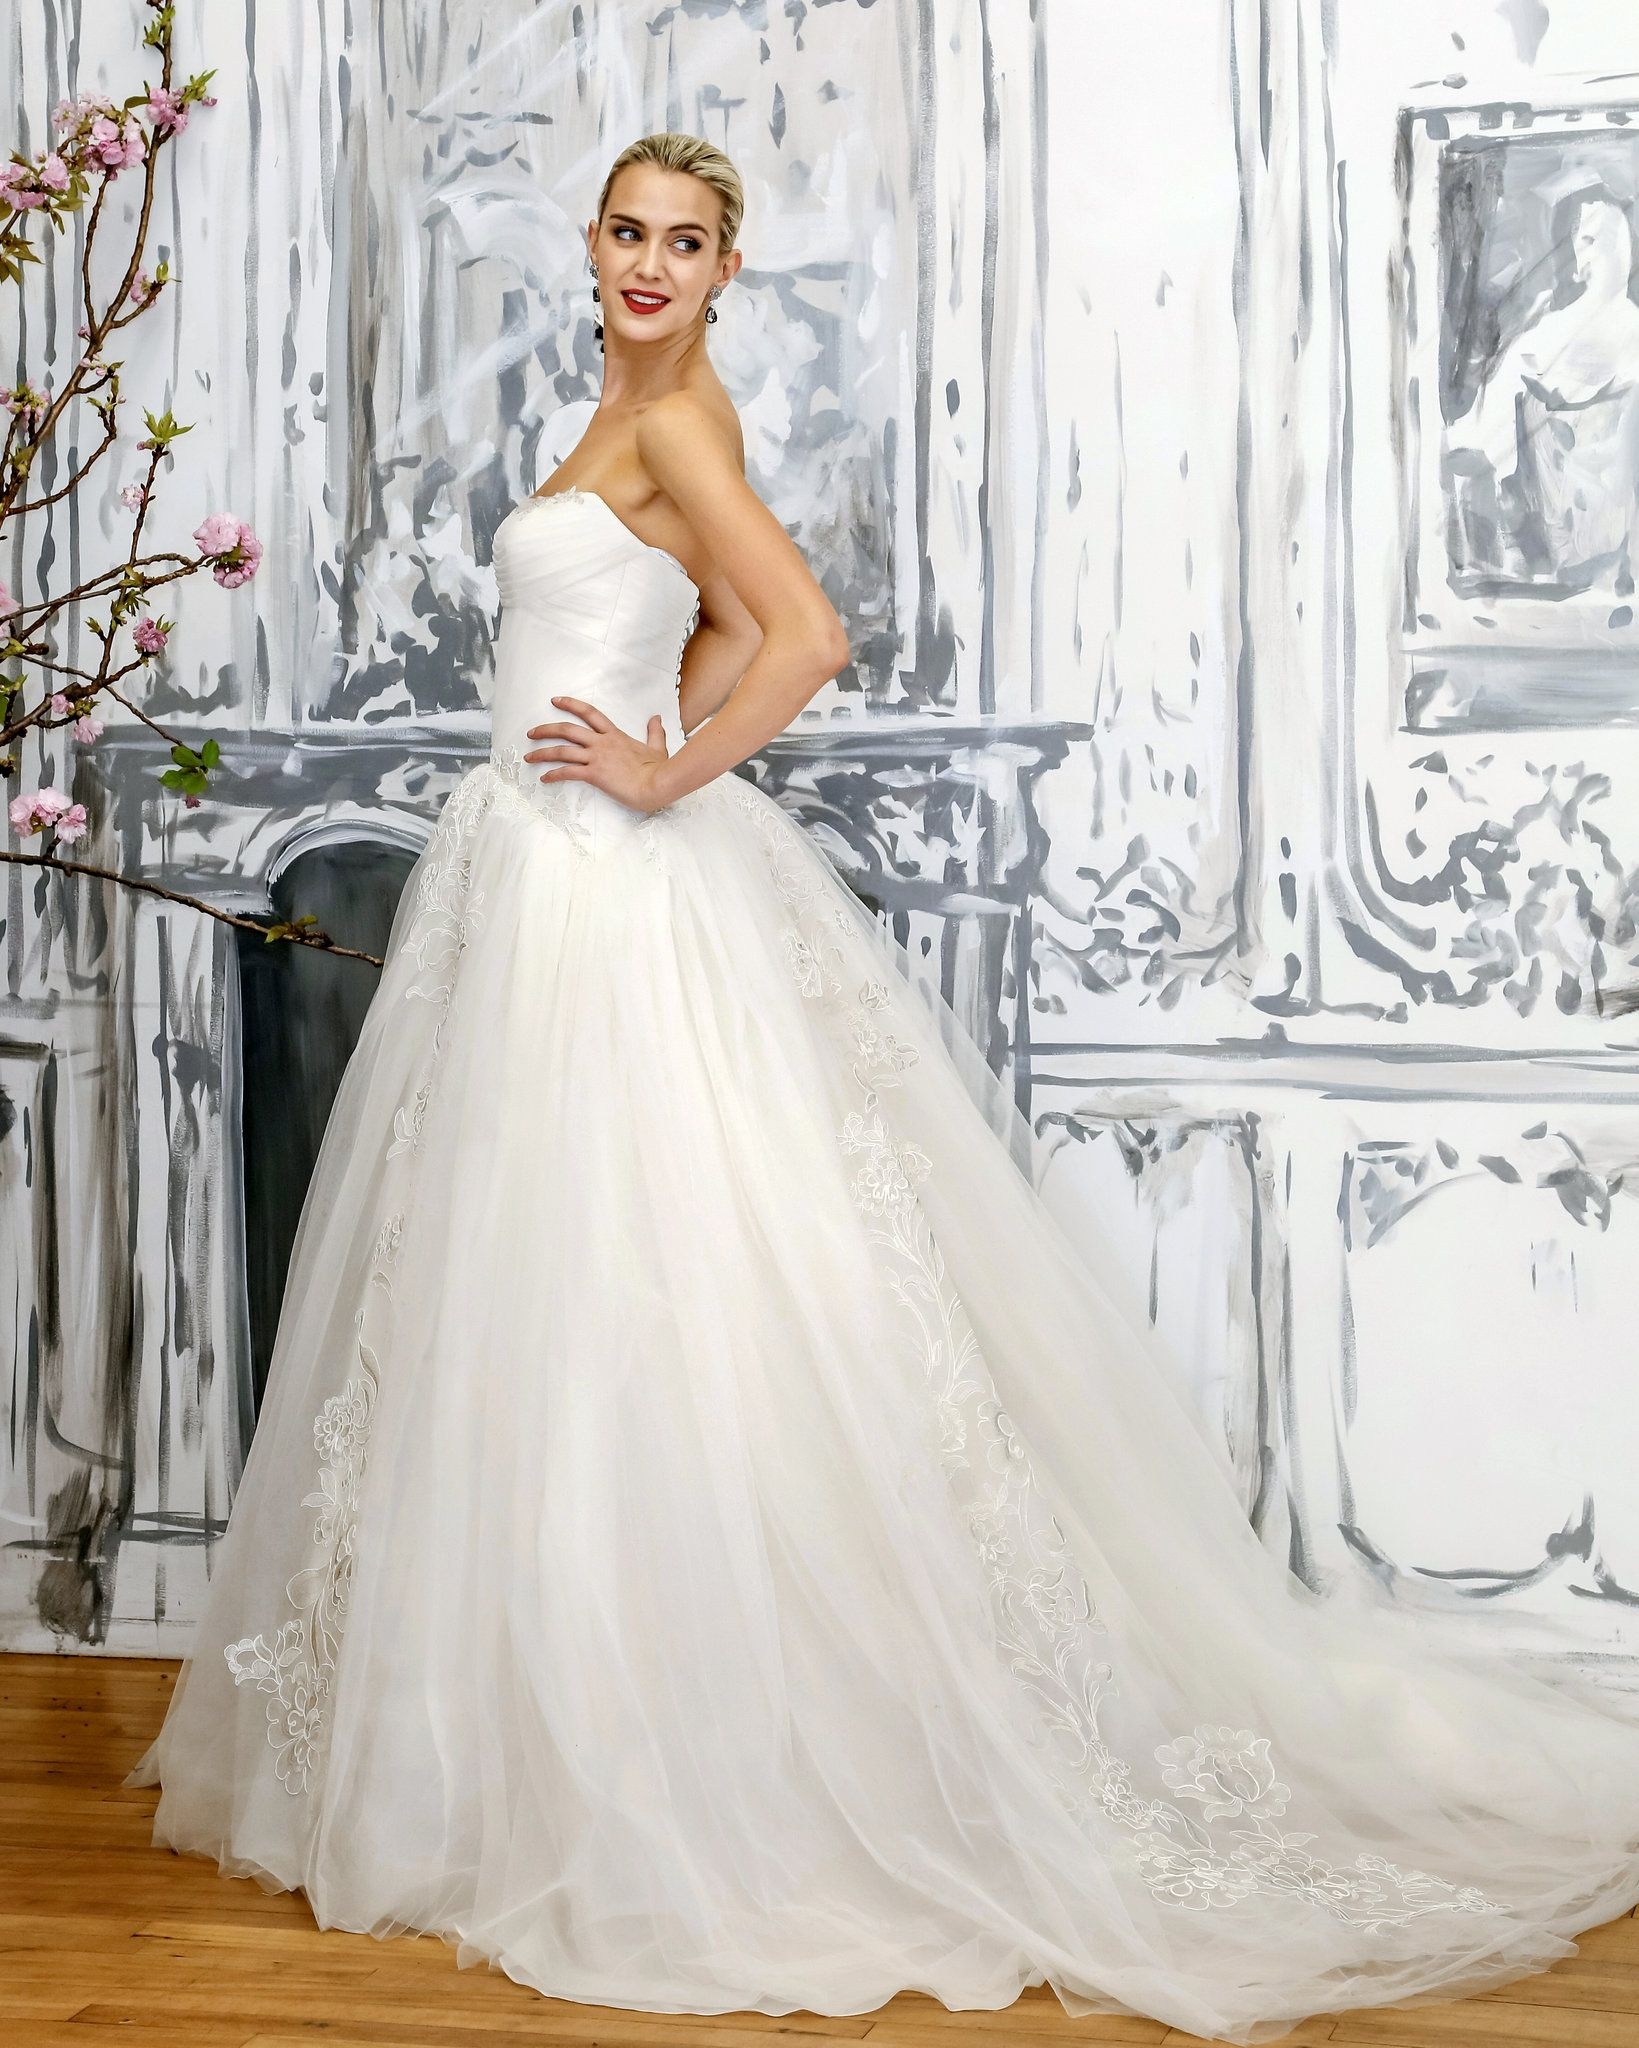 The Latest Bridal Dress Collections Showed Few New Wrinkles | Latest ...